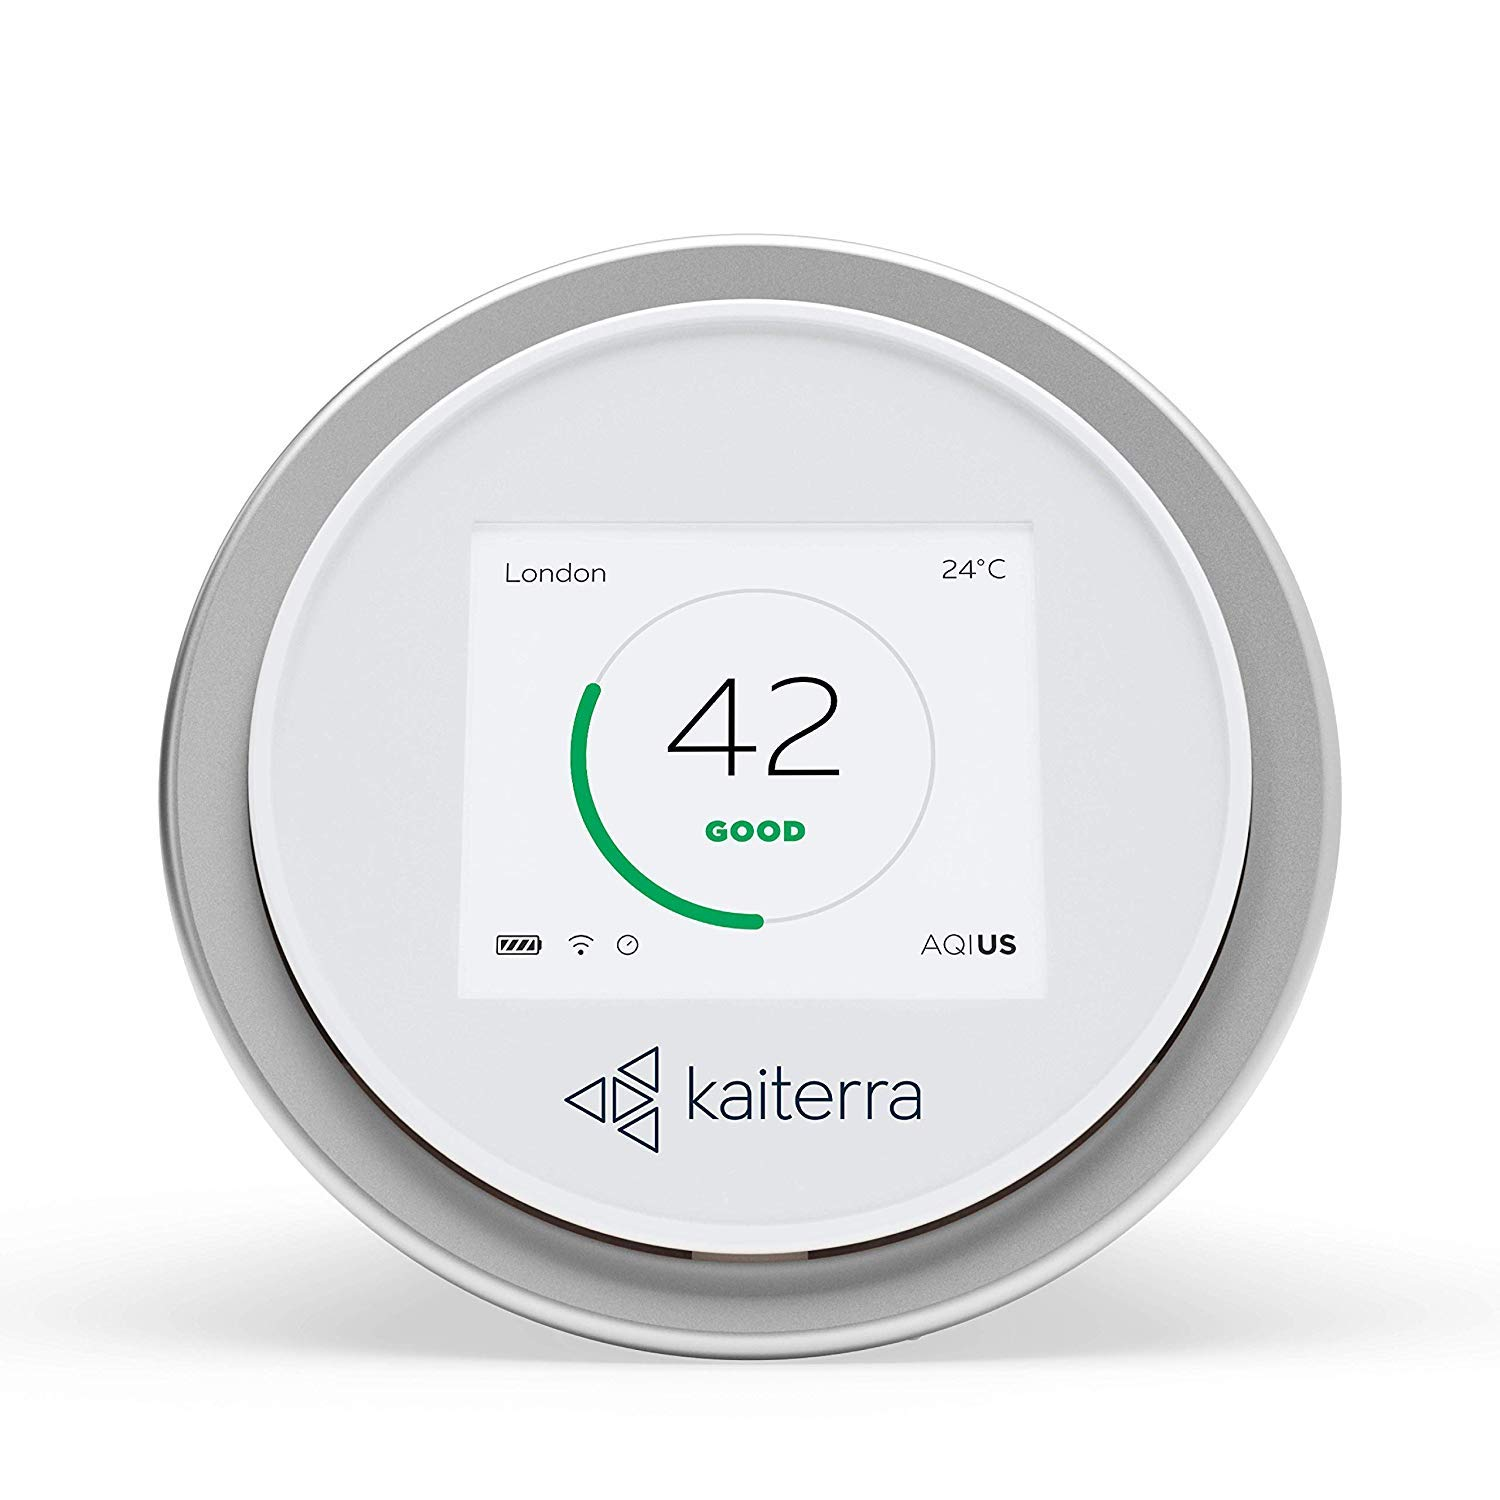 Kaiterra Laser Egg 2 Air Quality Monitor (White) | Accurate Air Check | 8hr Battery Life kida.in